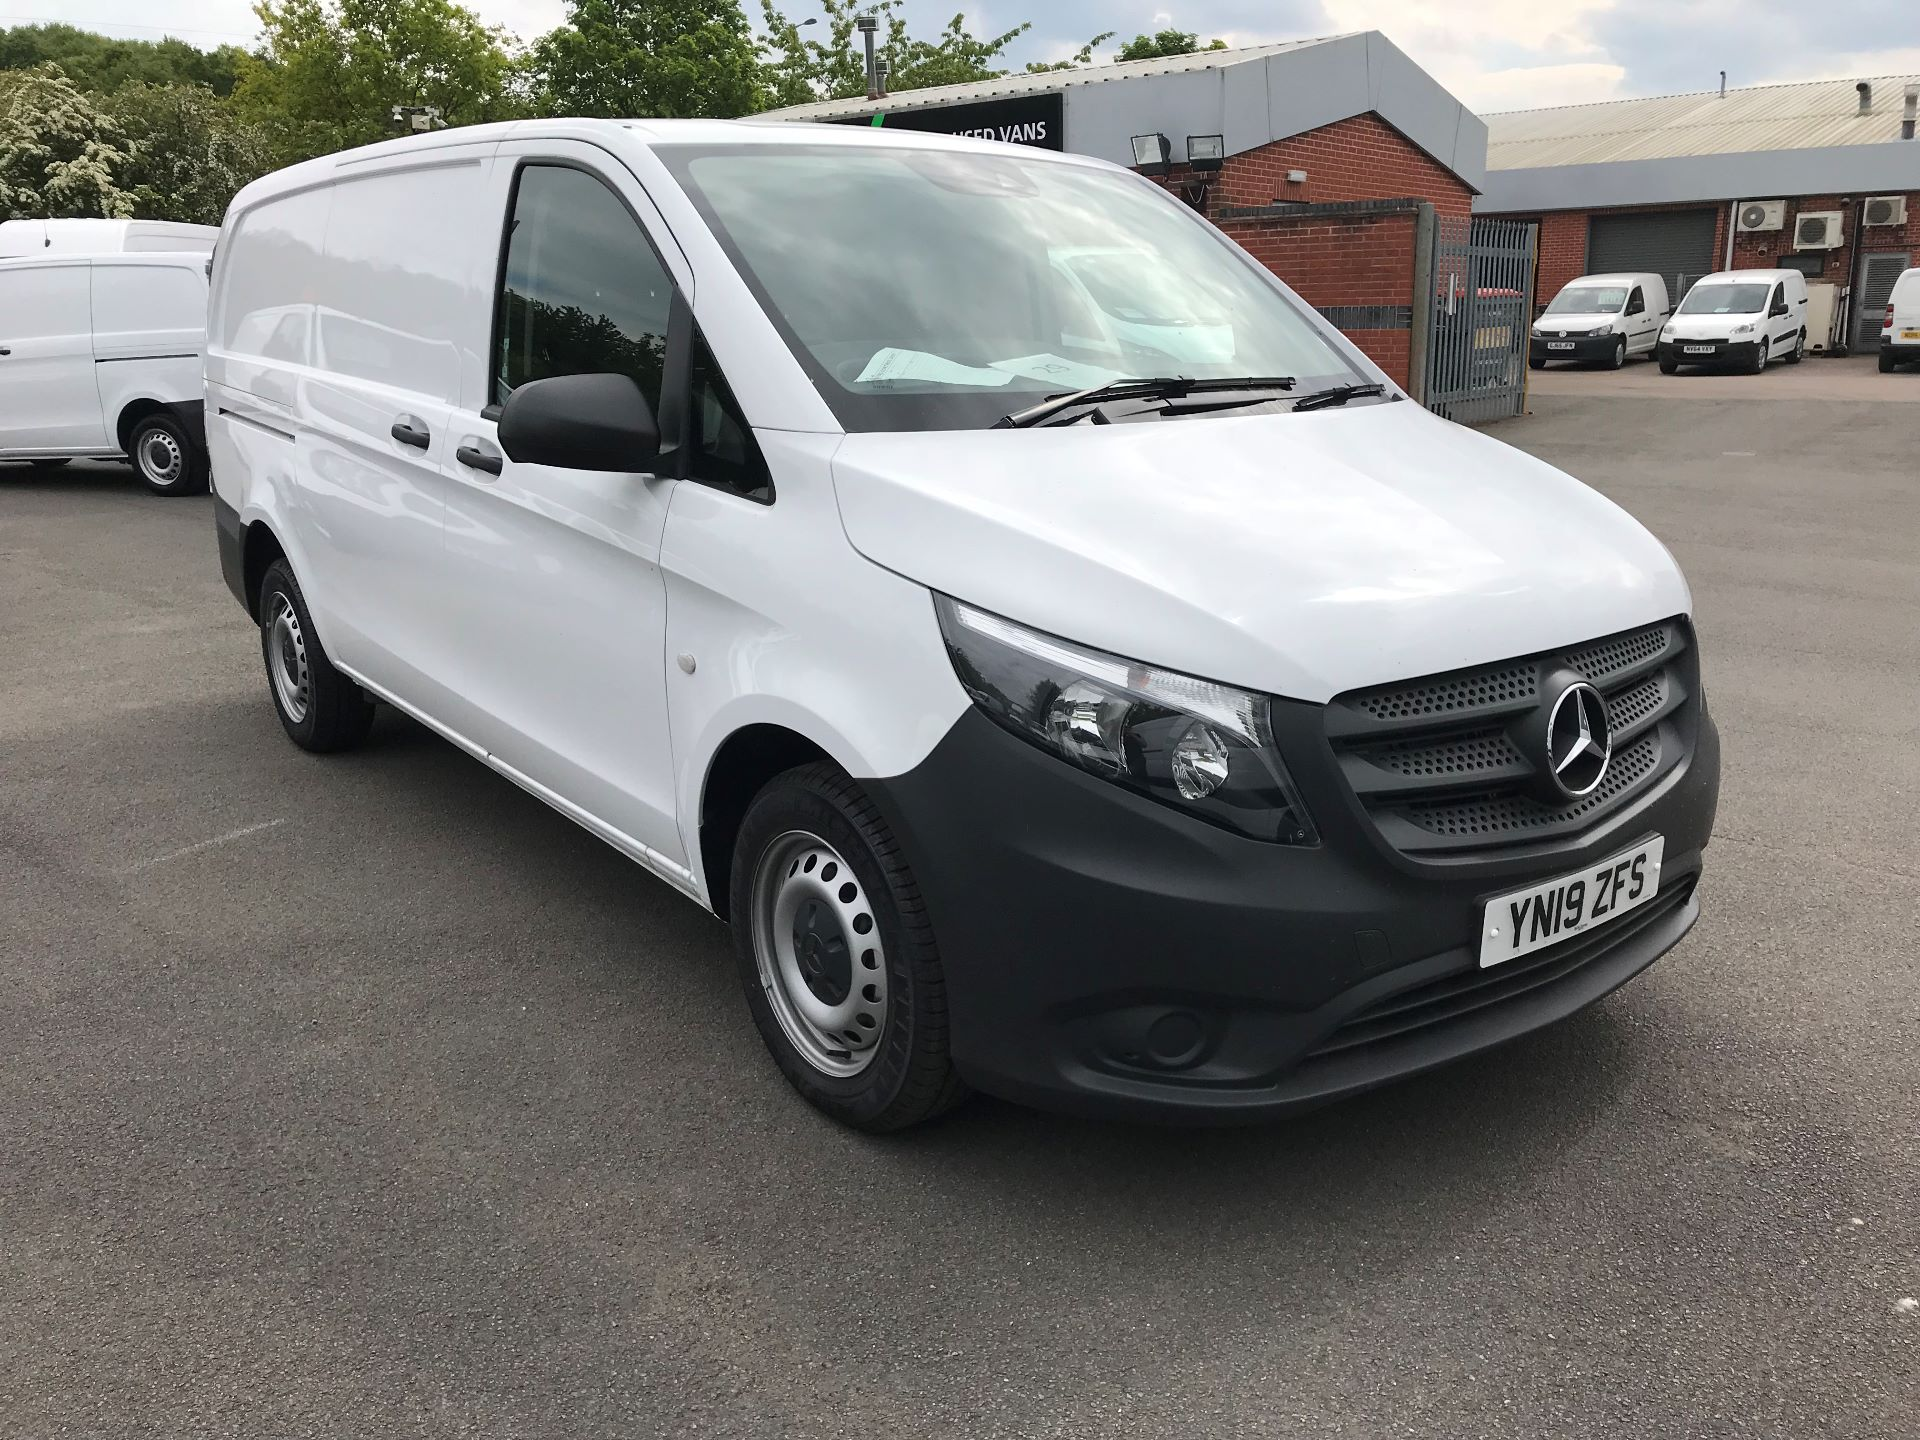 2019 Mercedes-Benz Vito 111Cdi Van Euro 6 Massive specification A/C (YN19ZFS)